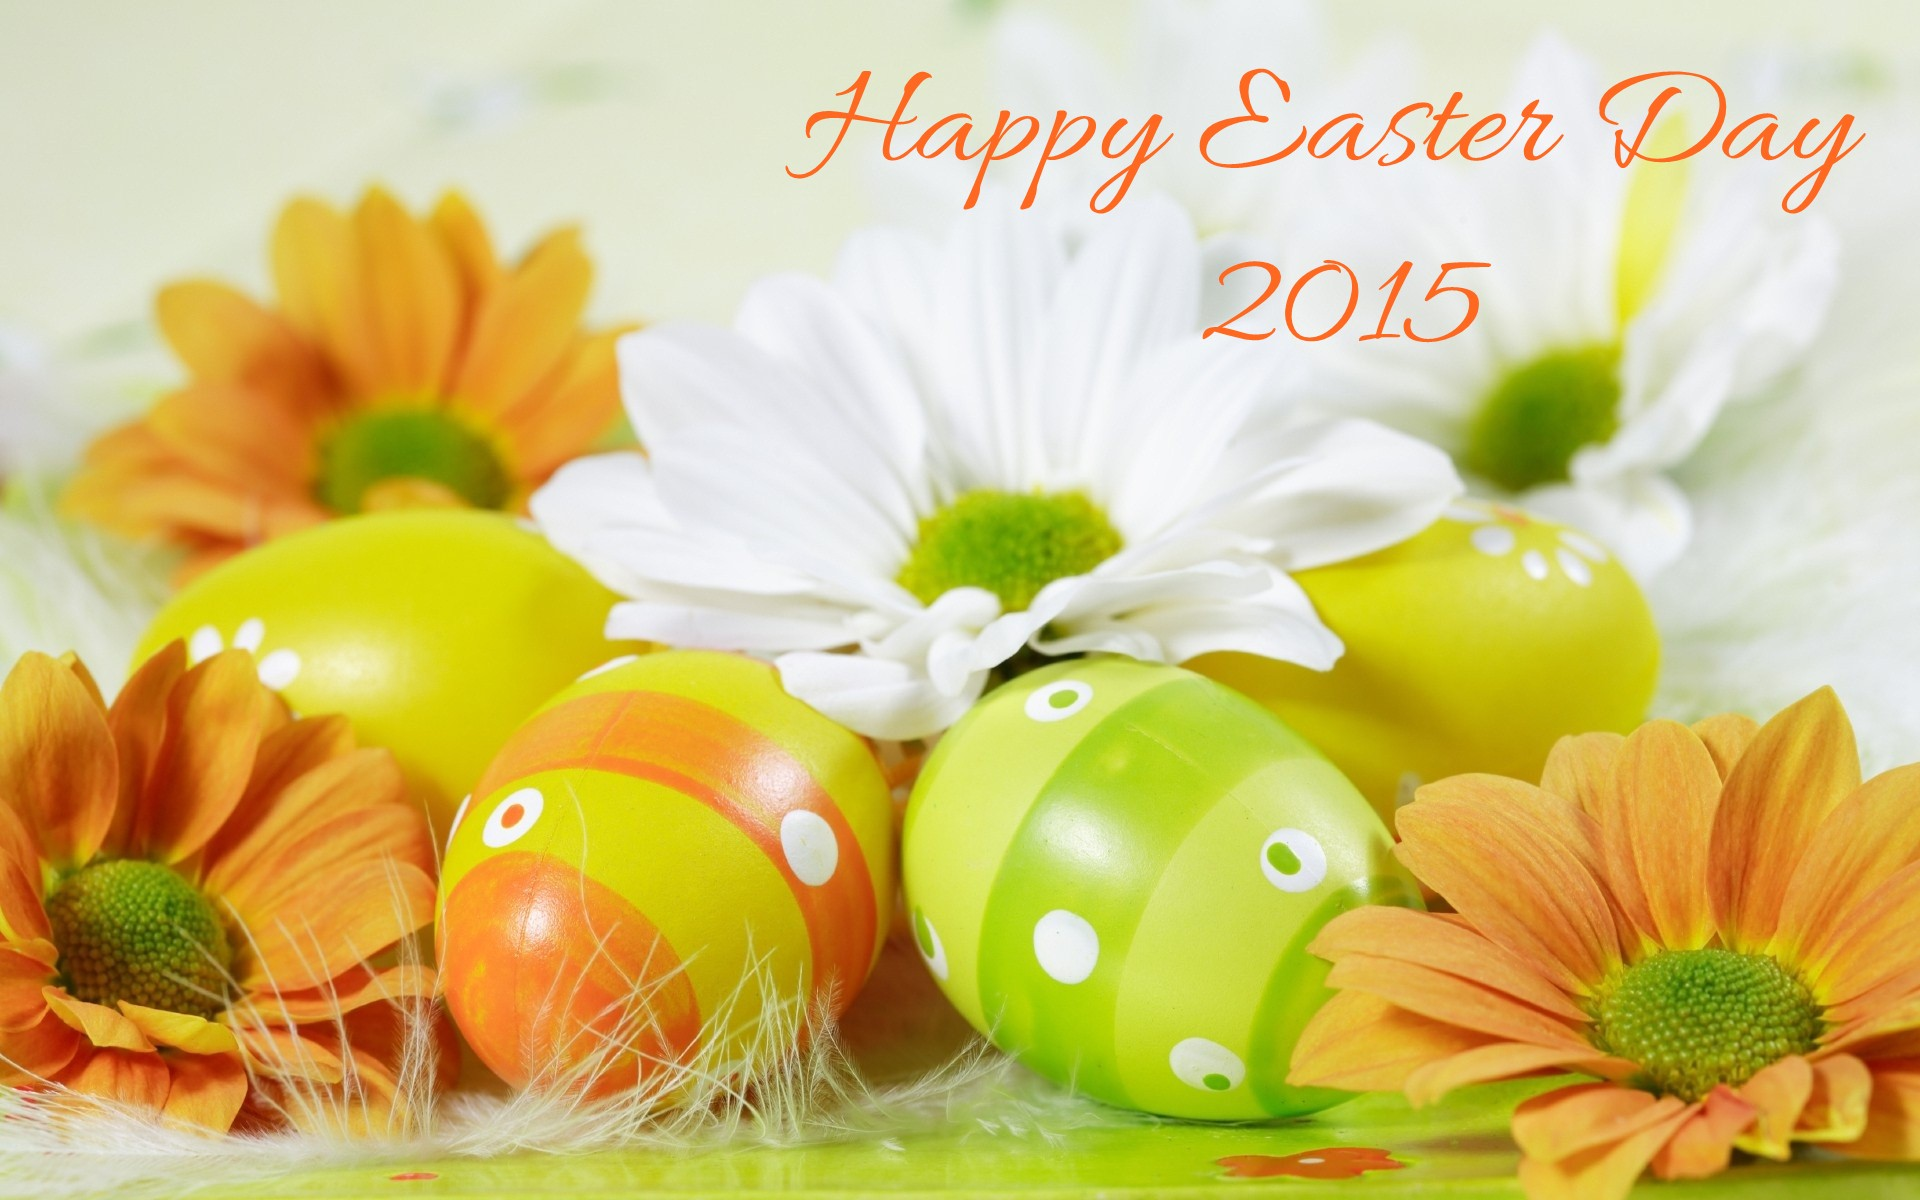 Easter day 2015 Desktop Backgrounds and Download Happy Easter day 1920x1200